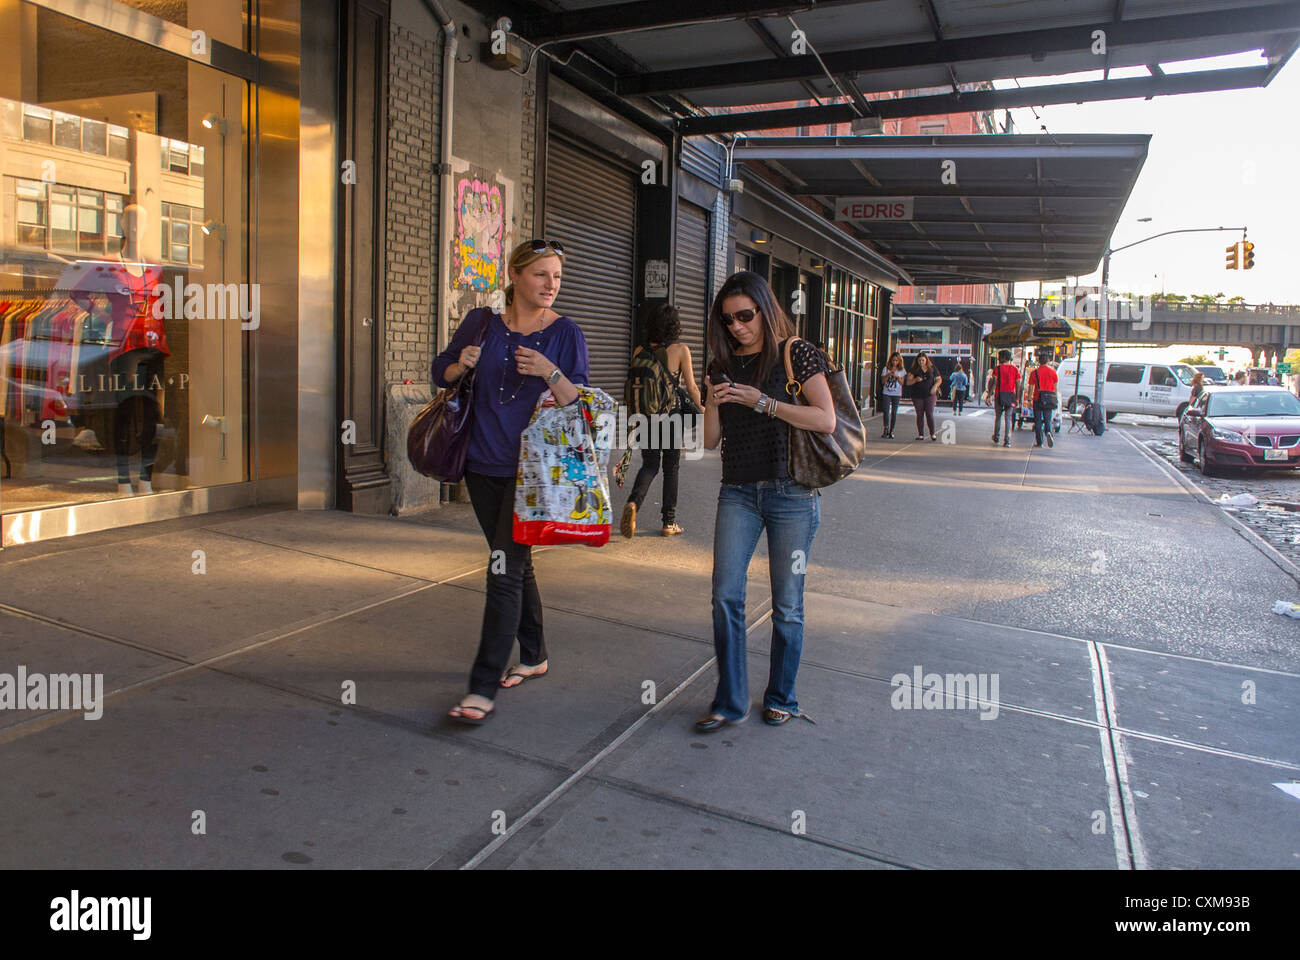 New York City, NY, USA, Street Scenes in the Meatpacking District Neighbourhood, Women Shopping, Local neighbourhoods - Stock Image